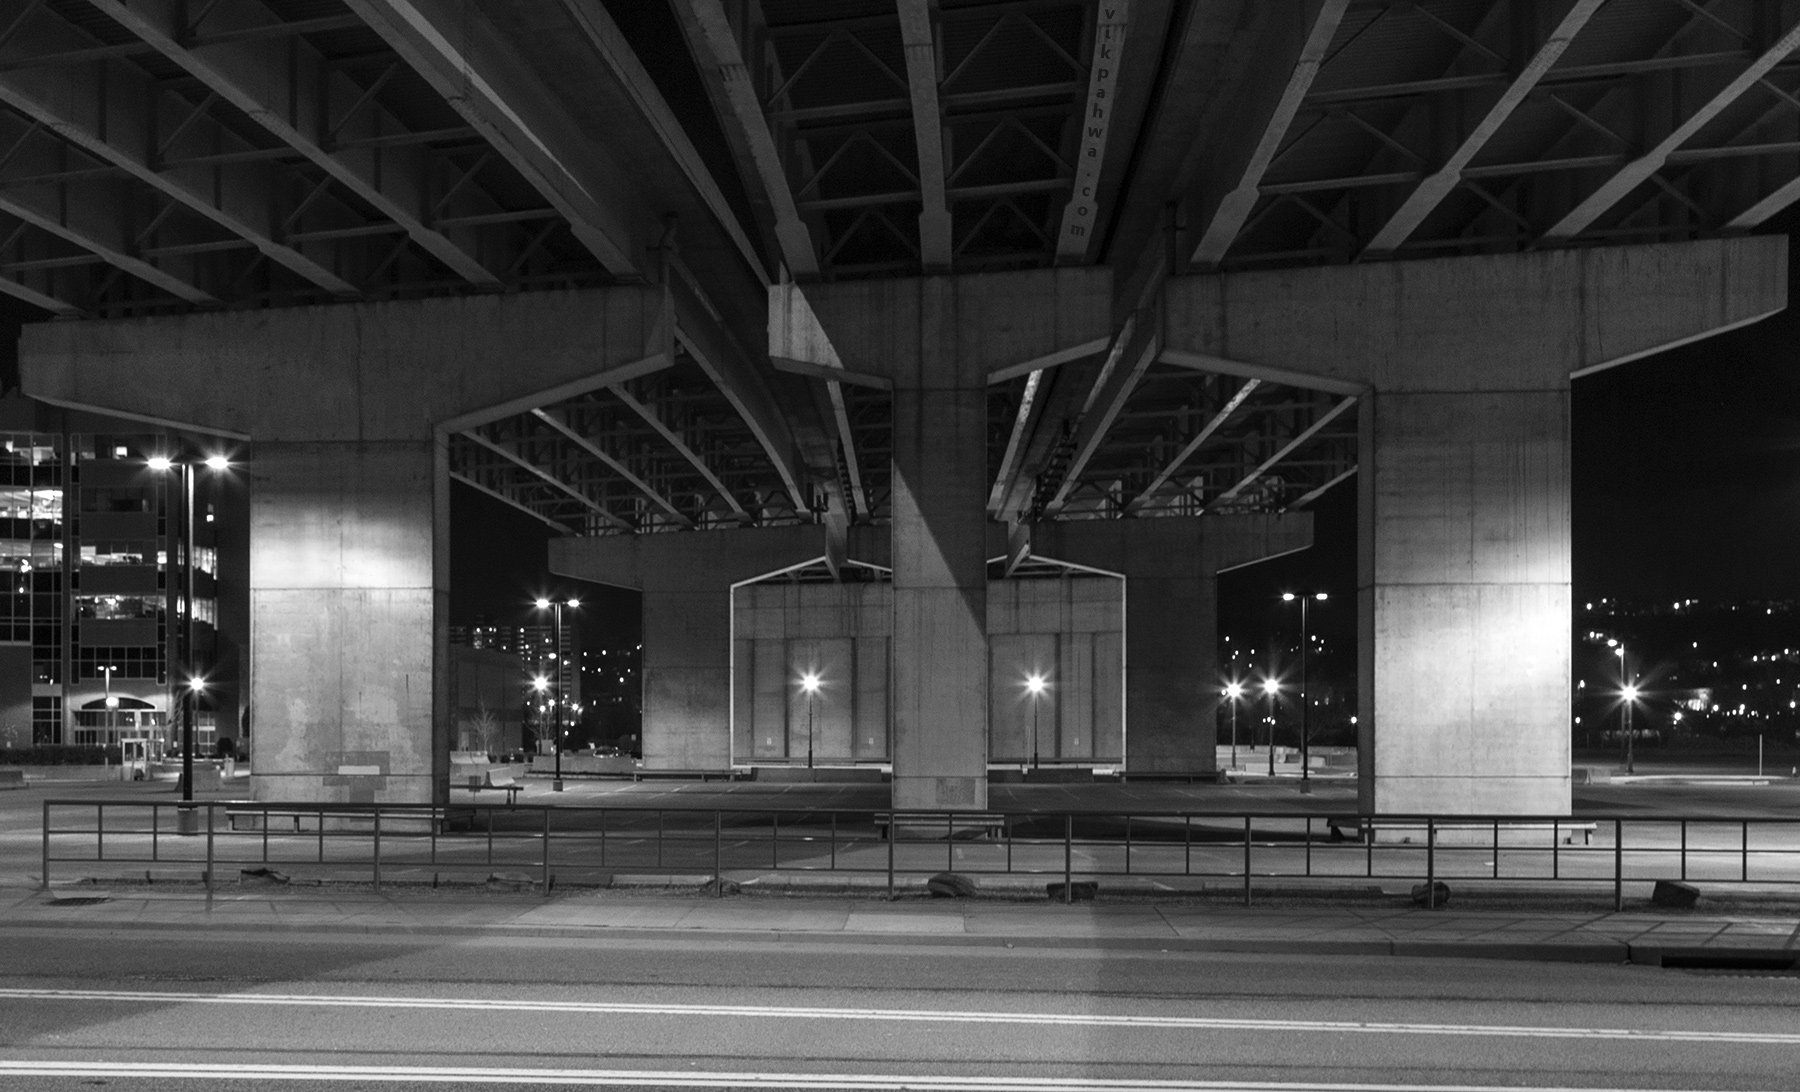 20160412. Under Pittsburgh's Interstate 579, a younger and clean